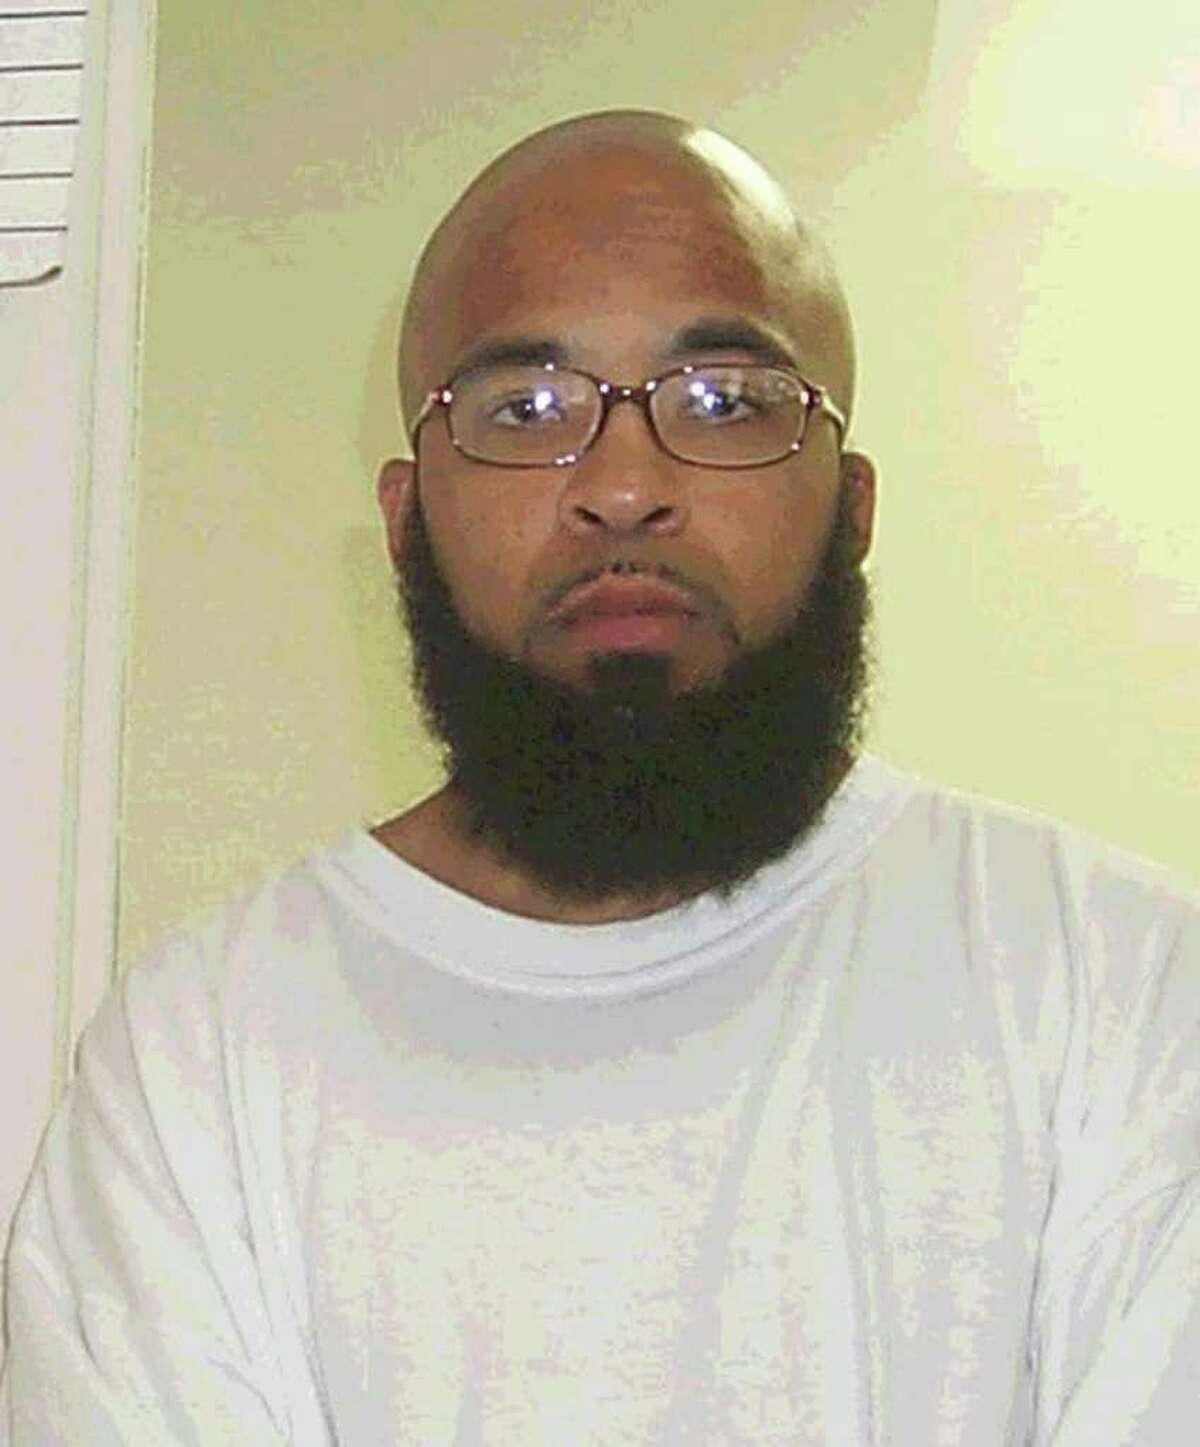 This is a 2004 photo provided by the Washington State Department of Corrections showing Abu Khalid Abdul-Latif, also known as Joseph Anthony Davis, of Seattle. Davis, and Walli Mujahidh, also known as Frederick Domingue Jr., of Los Angeles, were arrested Wednesday night, June 22, 2011. They men were arrested at a warehouse garage when they arrived to pick up machine guns to use in an alleged terror plot.